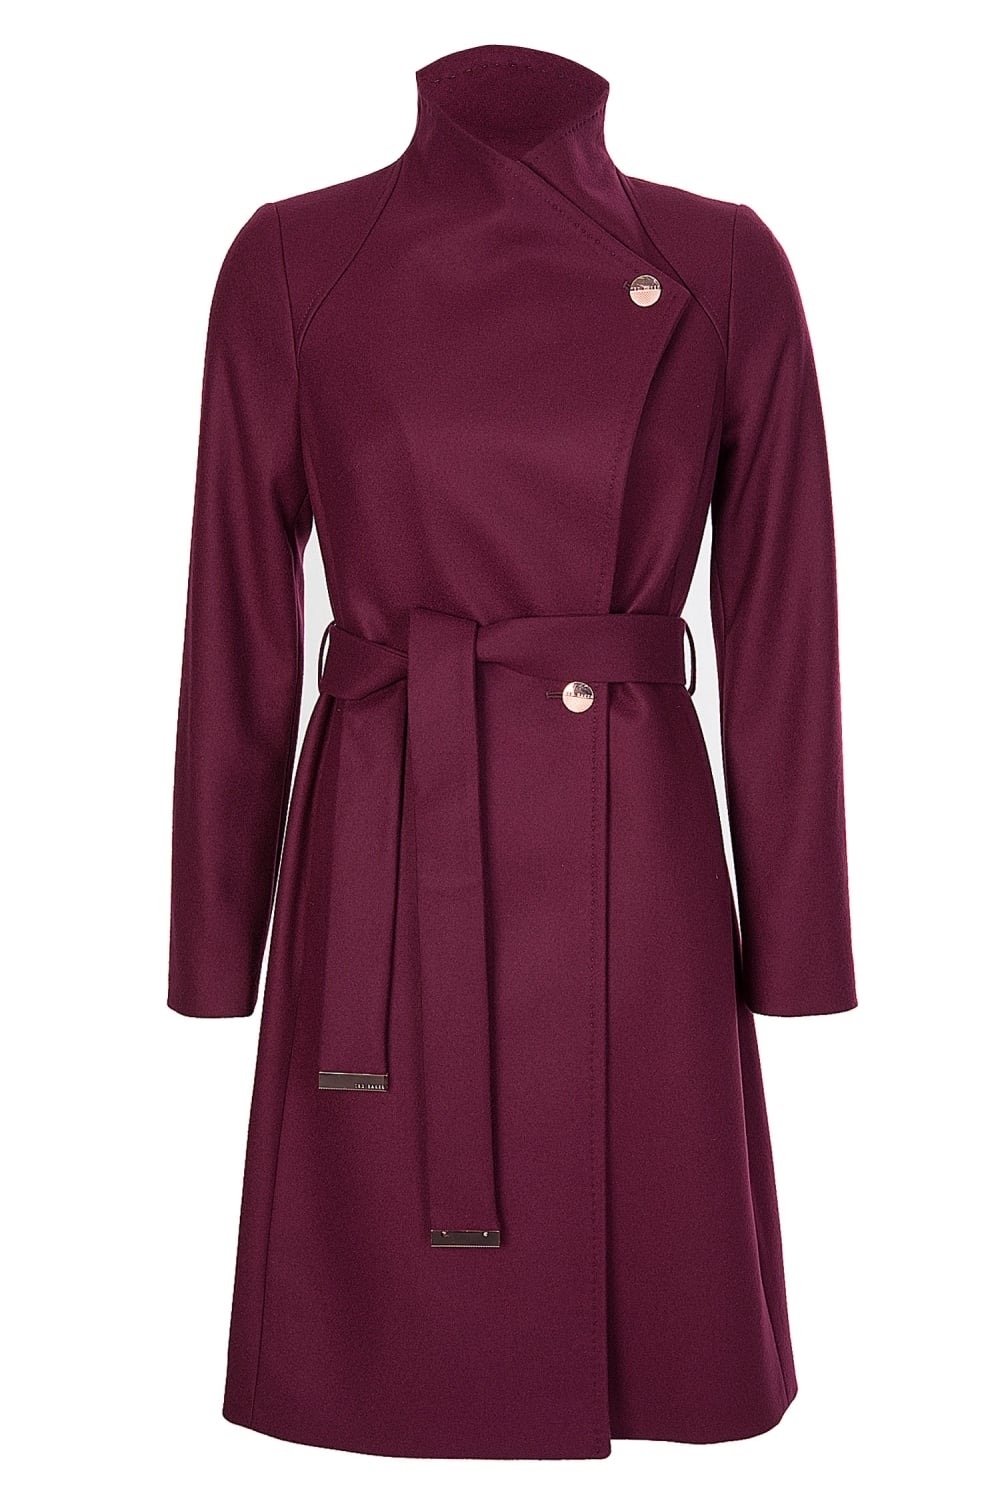 casual shoes uk cheap sale find lowest price Womens Long Trench Coat Oxblood